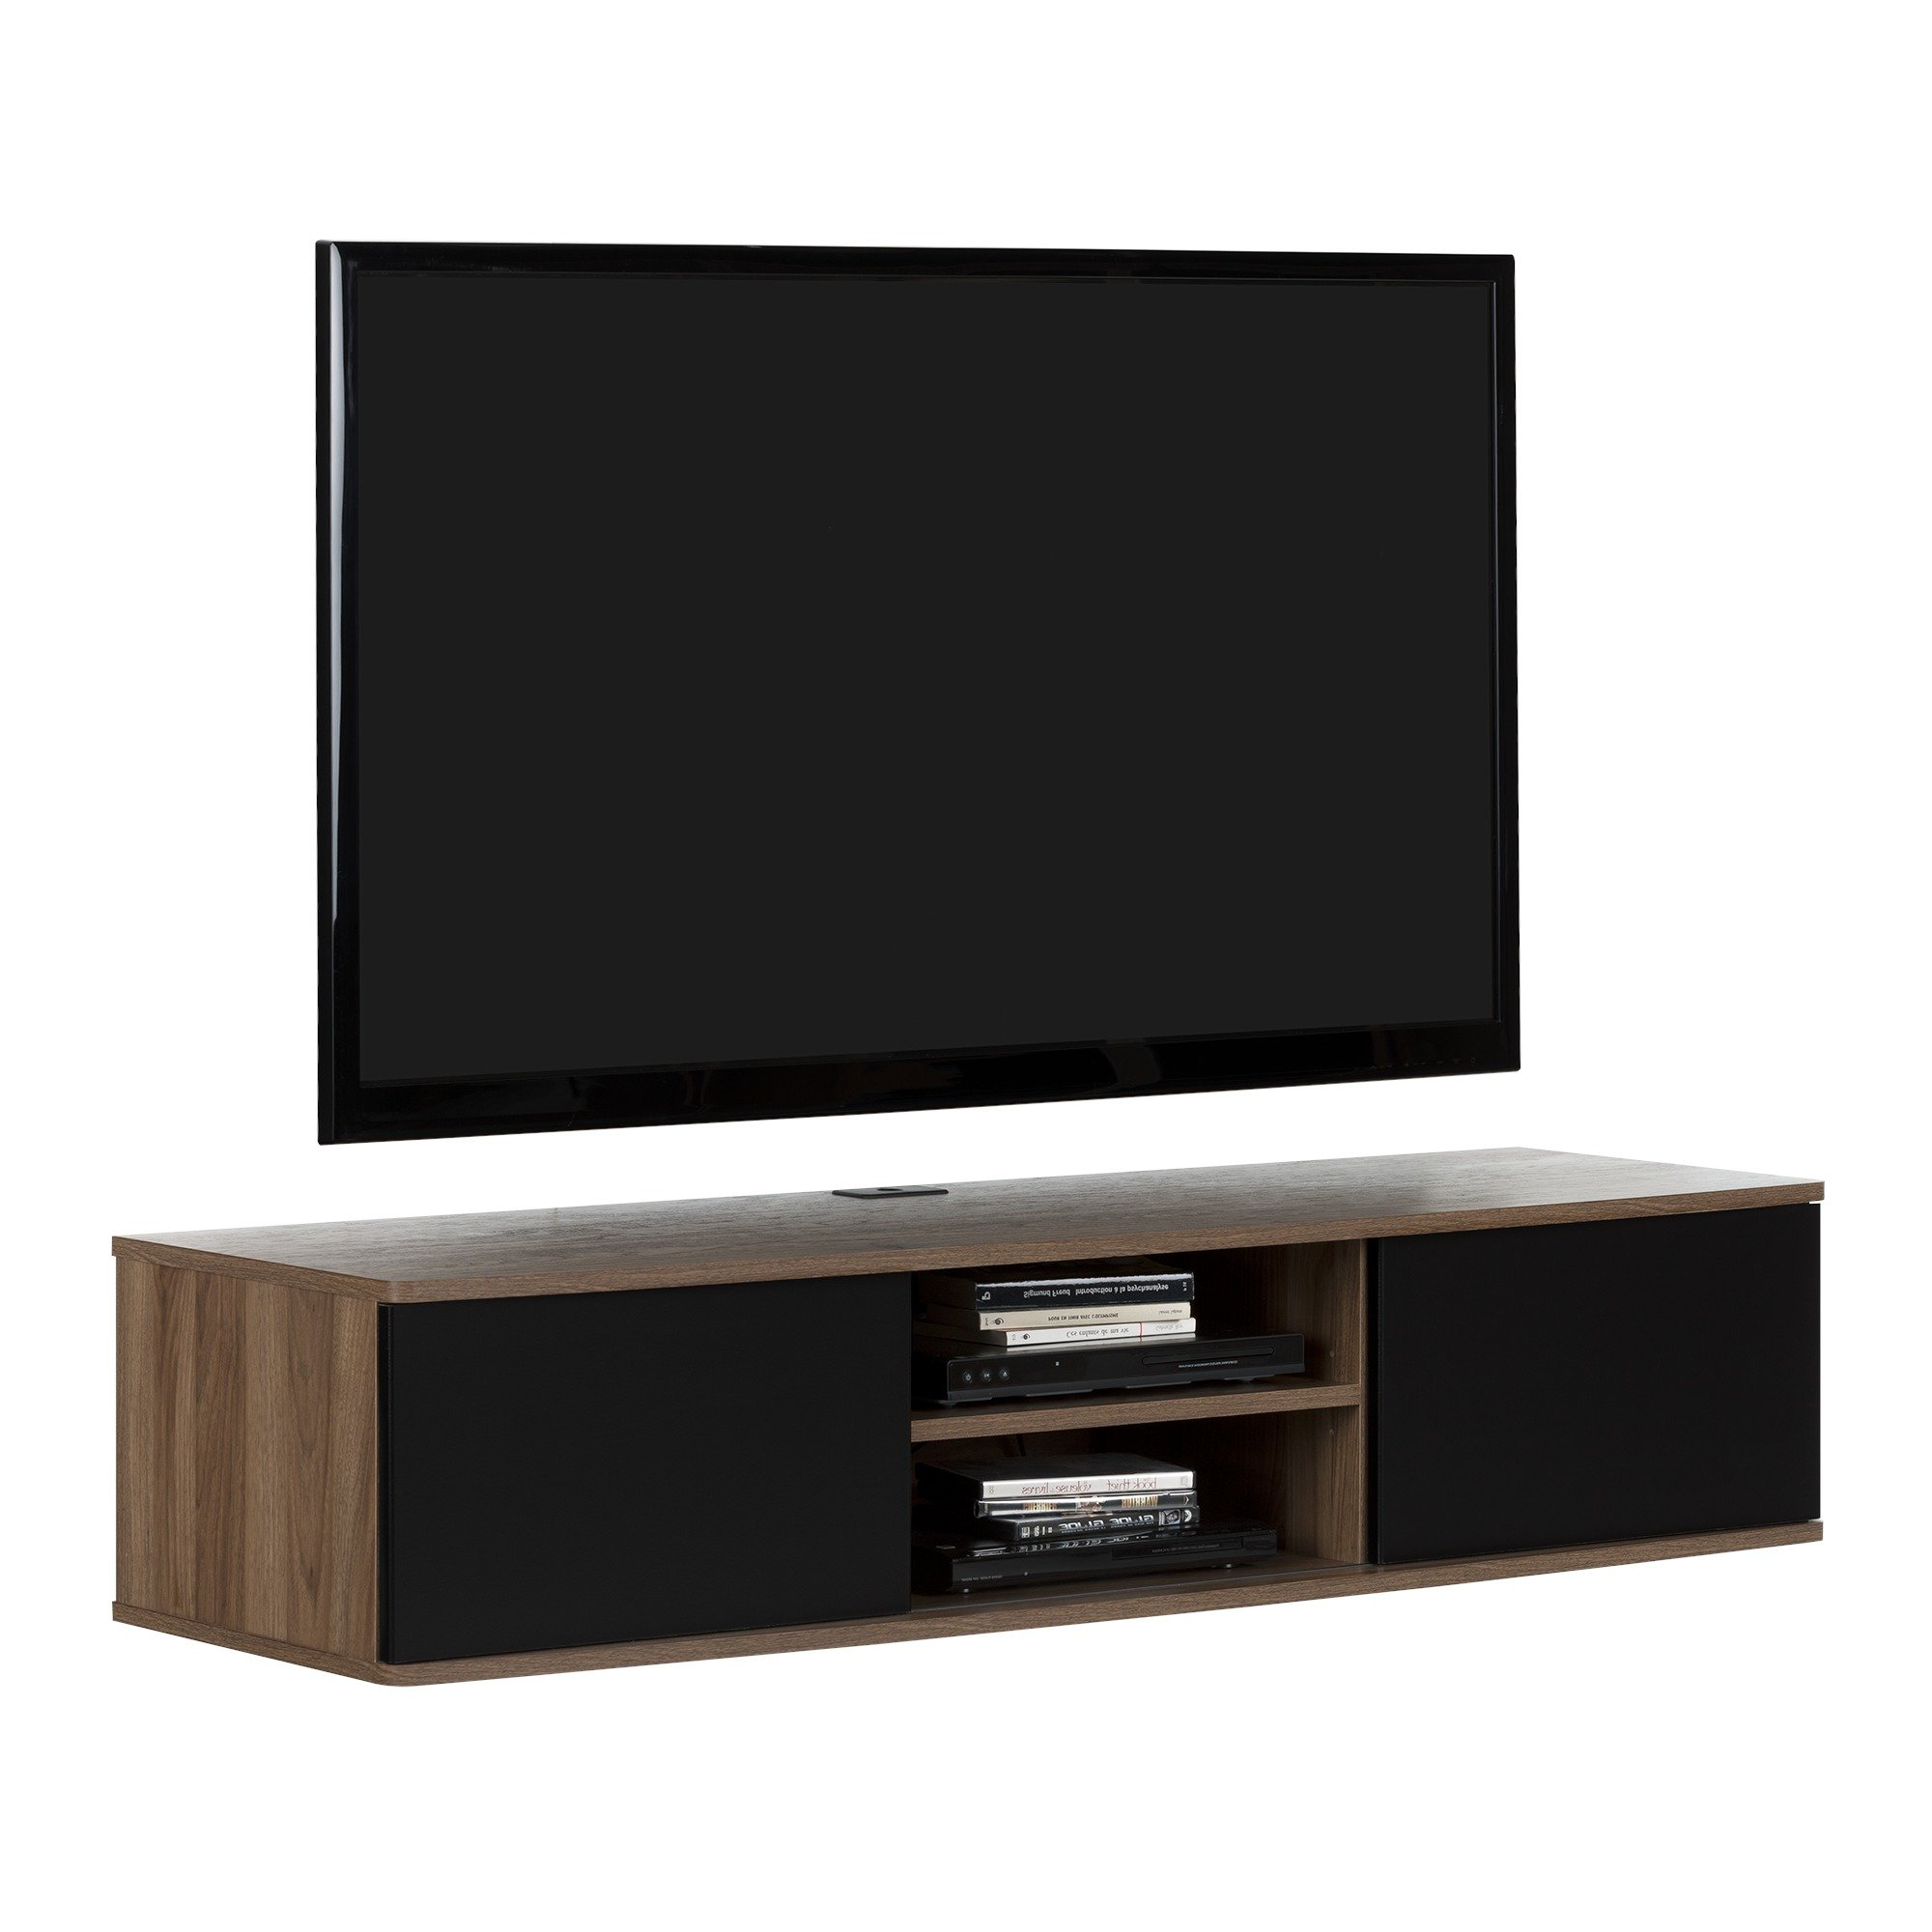 Popular Agora Wall Mounted Media Console Tv Stand For Tvs Up To 58 In Casey Umber 54 Inch Tv Stands (View 15 of 20)